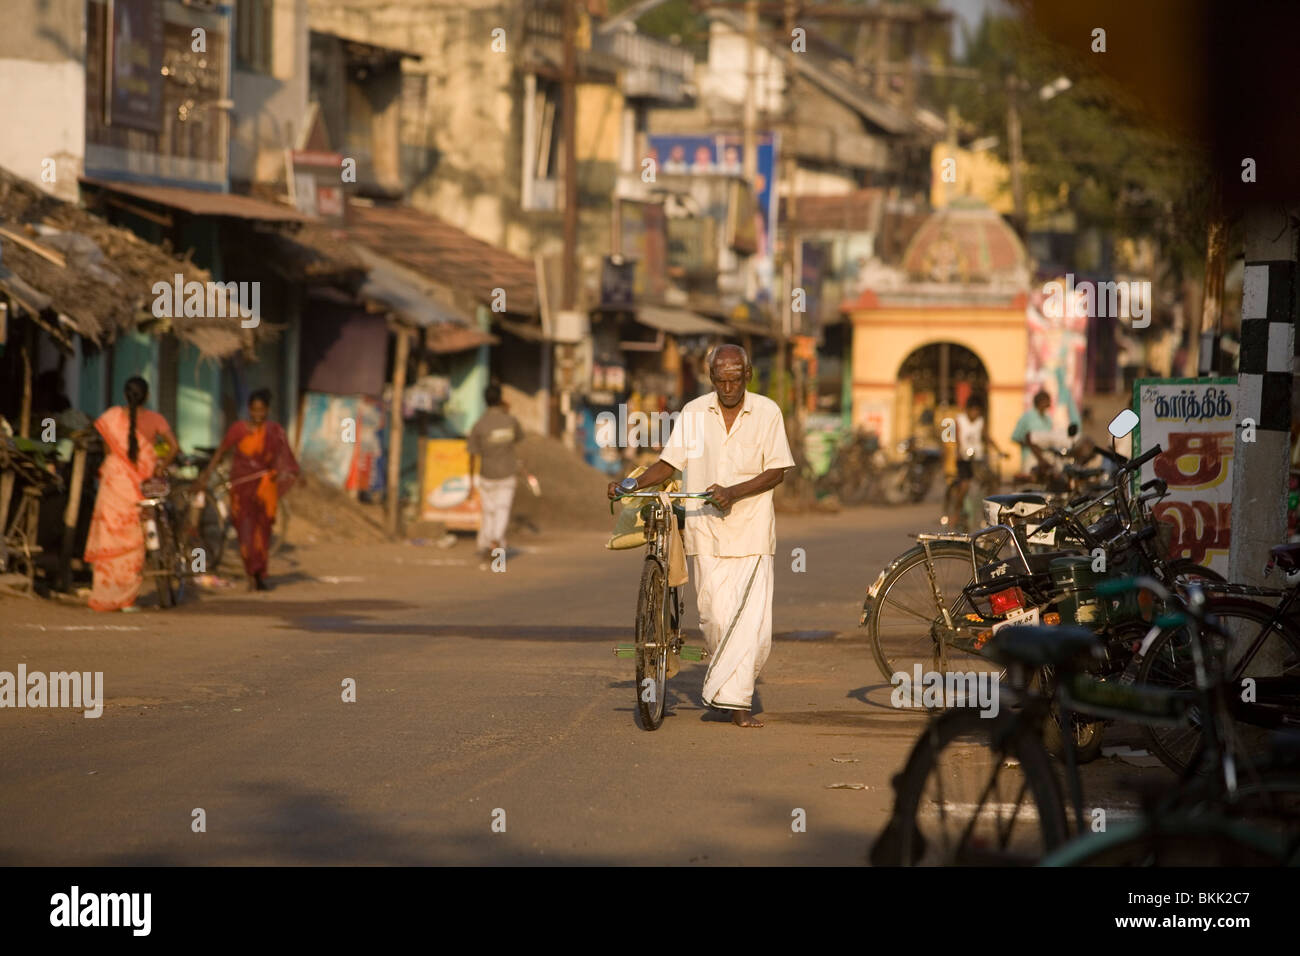 A man pushes his bicycle down a street in the temple town Swamimalai, Tamil Nadu, India - Stock Image